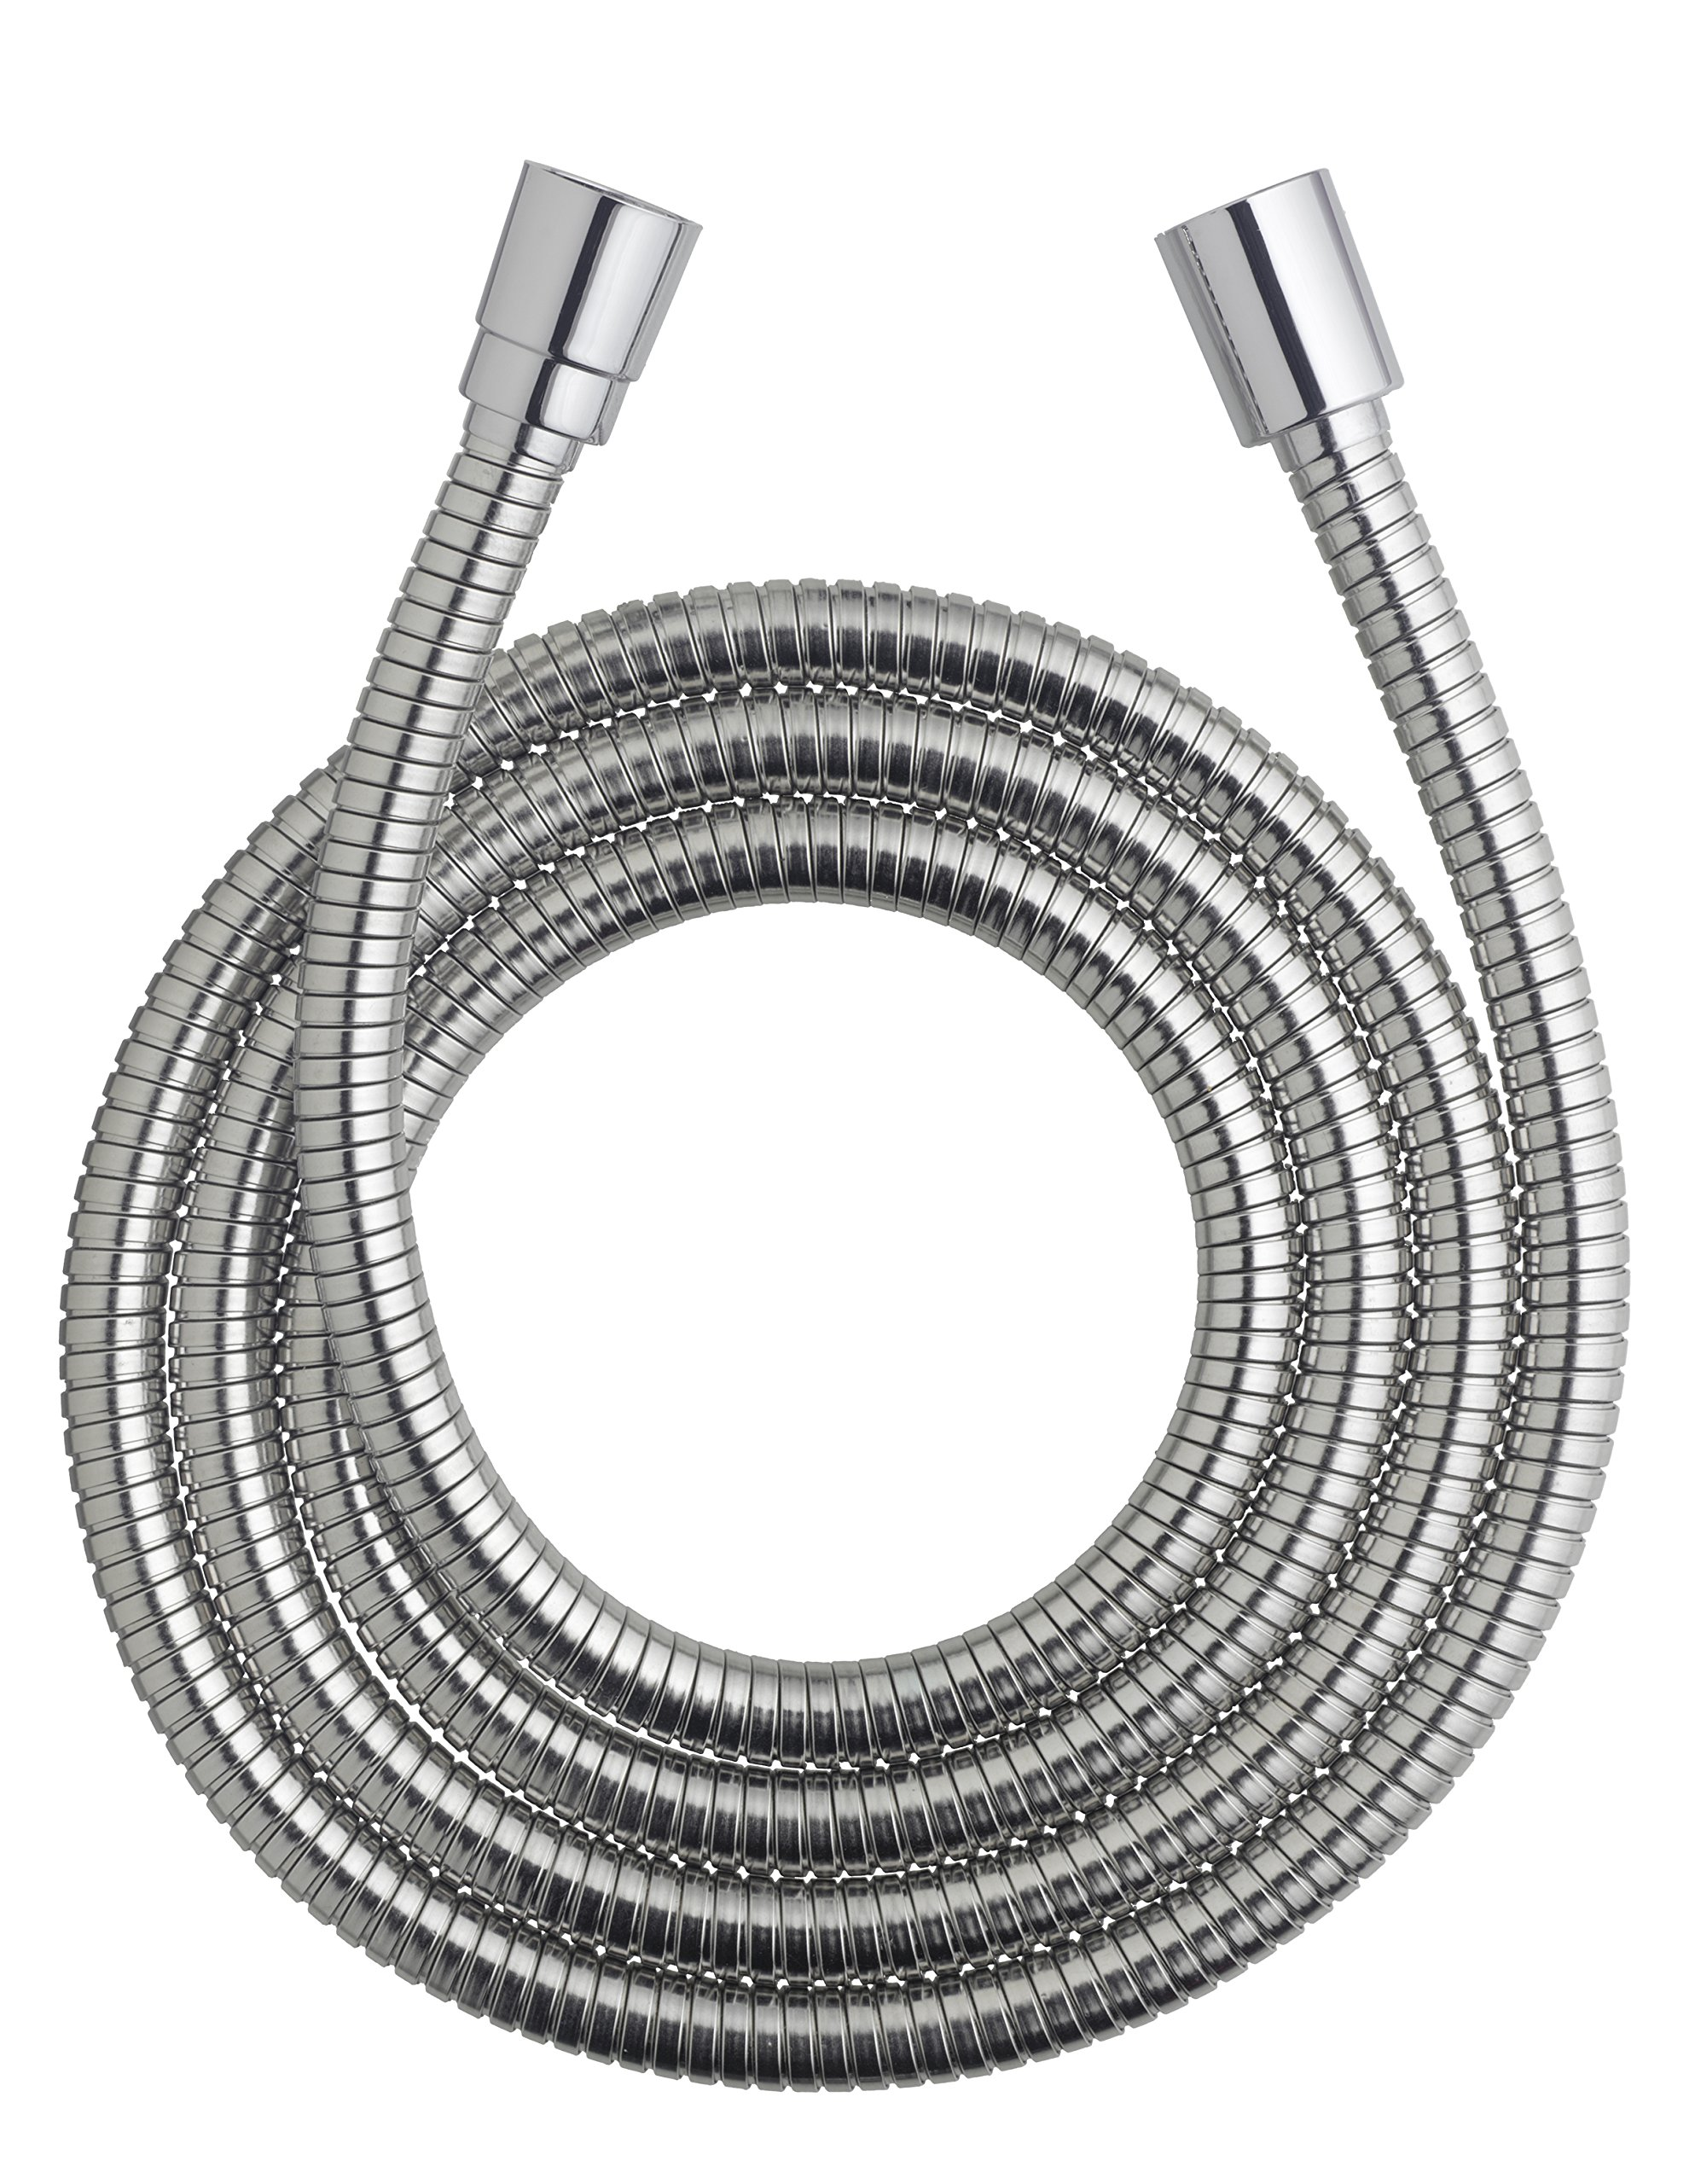 Waterpik HOS-396M 75-Inch Stretchable Metal Shower Hose